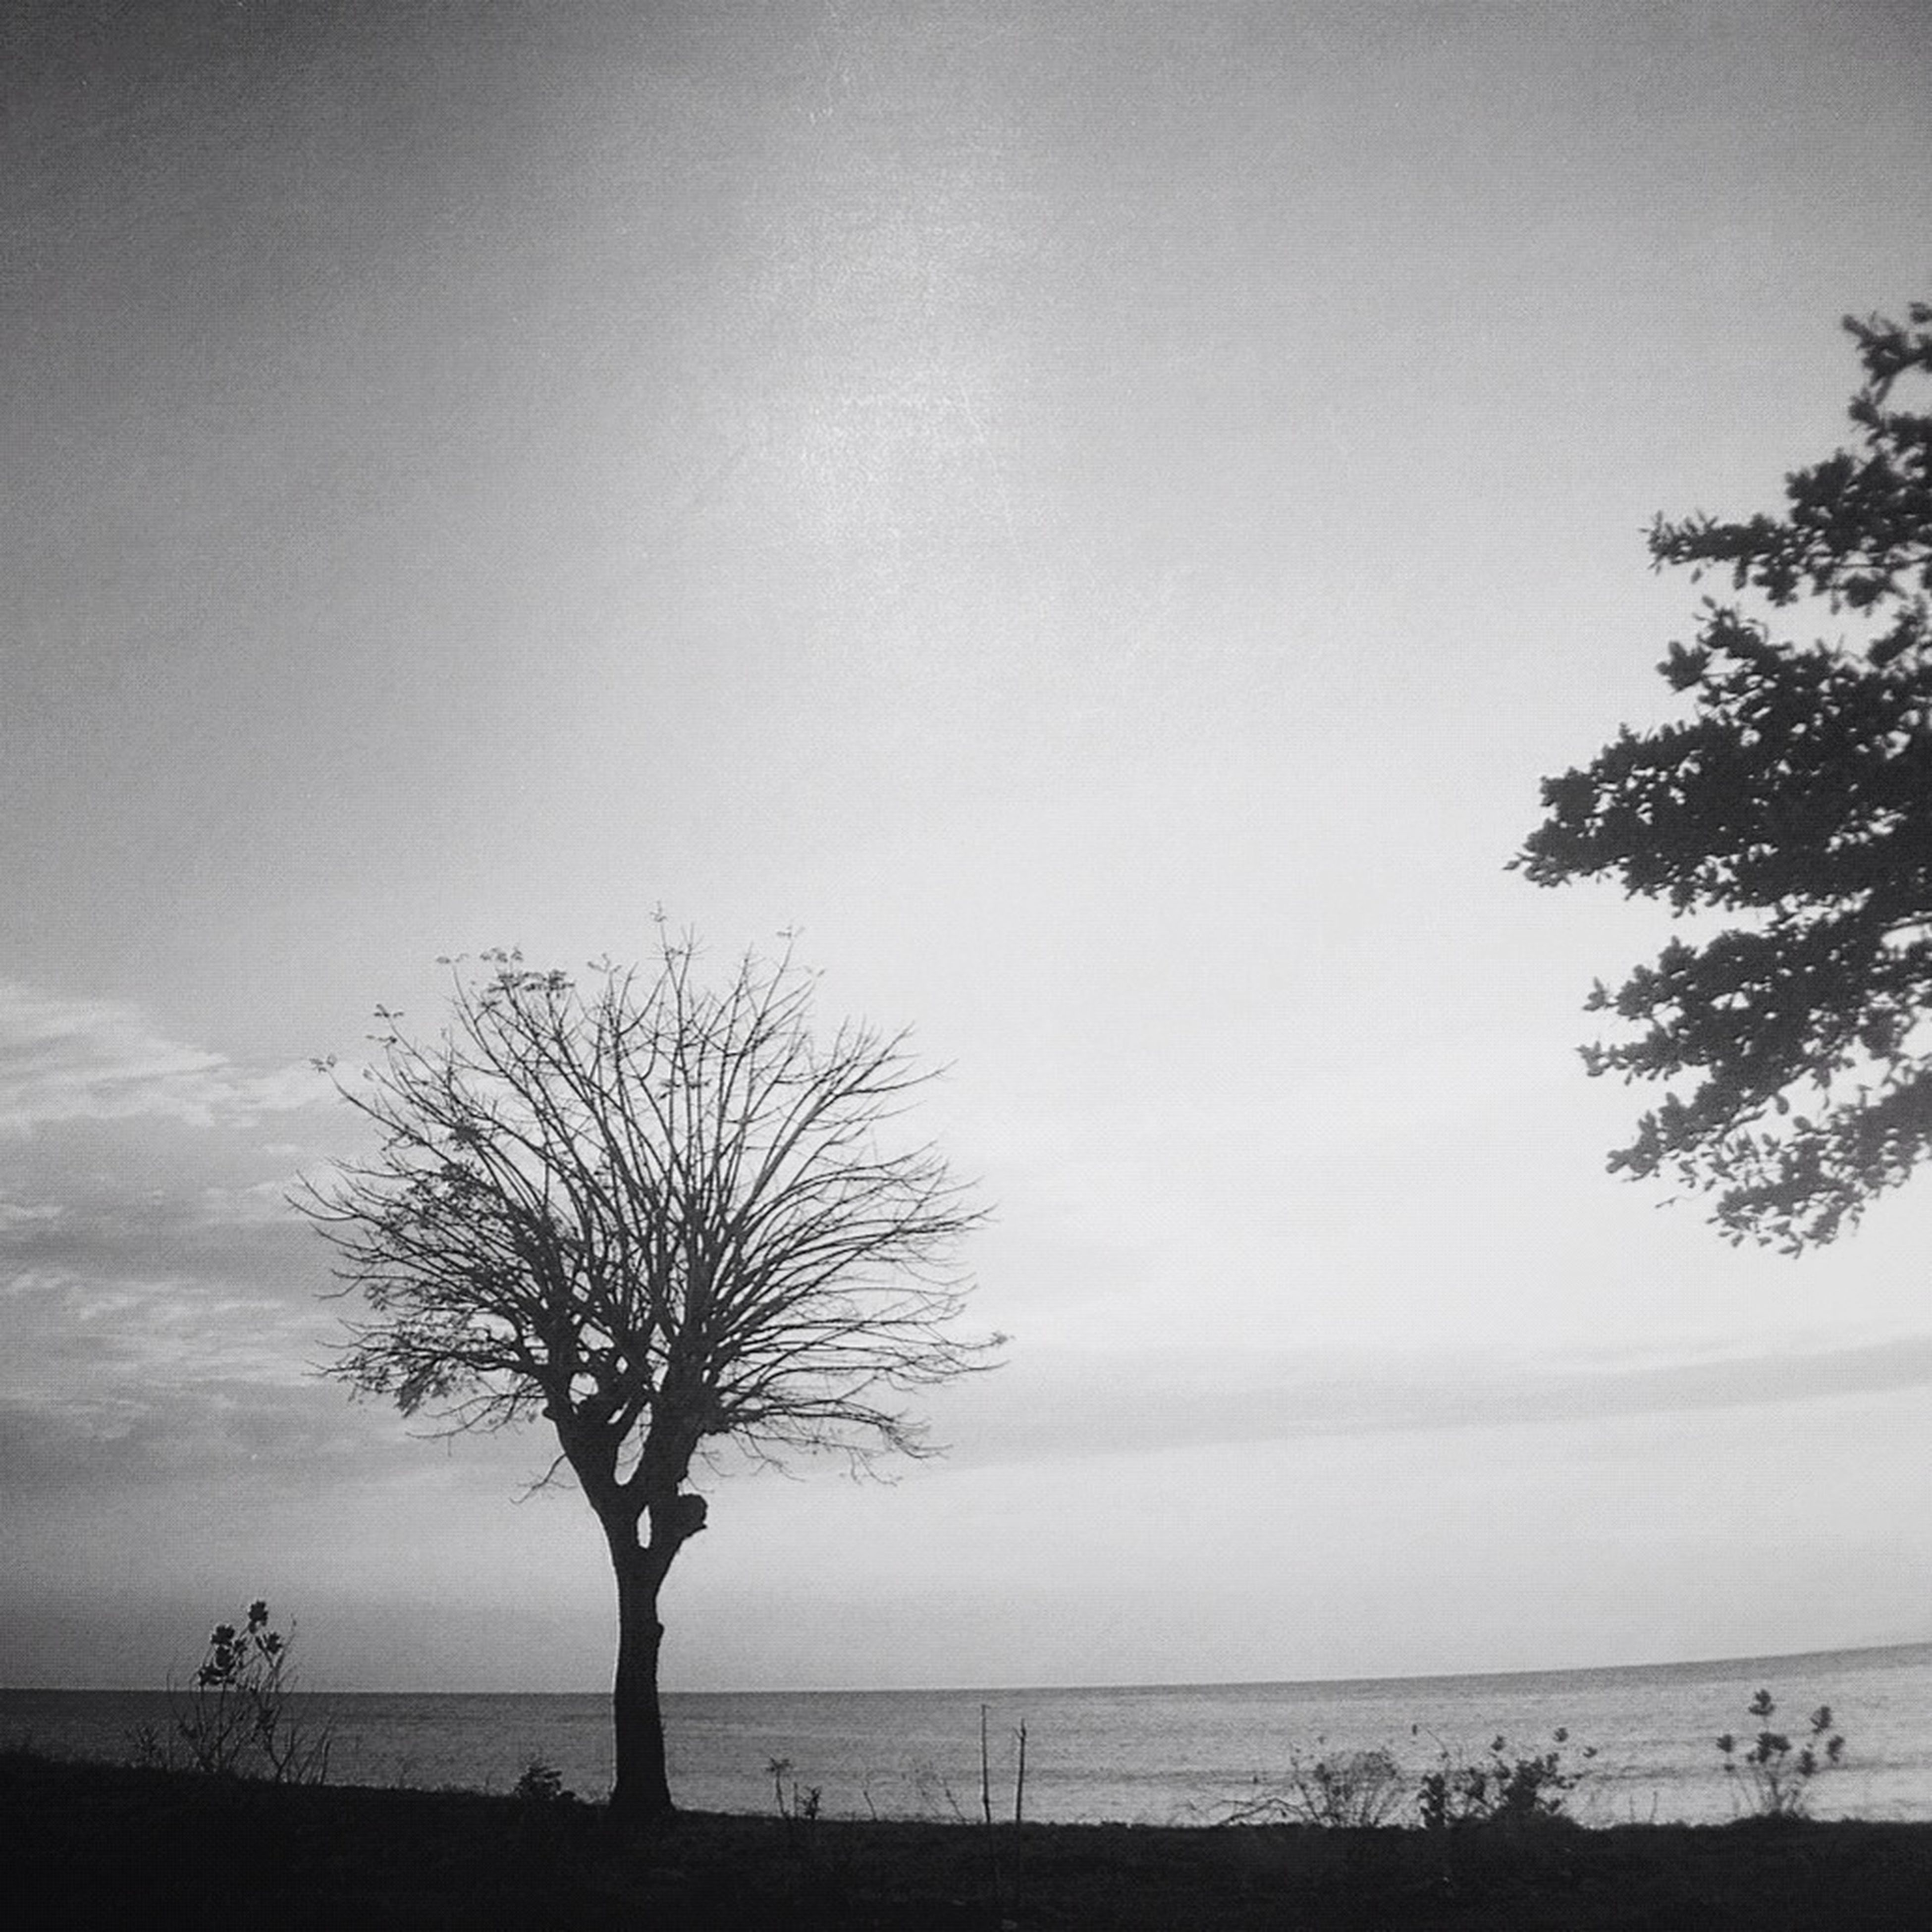 sea, horizon over water, tranquility, tranquil scene, water, tree, beach, scenics, beauty in nature, nature, silhouette, sky, shore, branch, clear sky, idyllic, vacations, copy space, tree trunk, incidental people